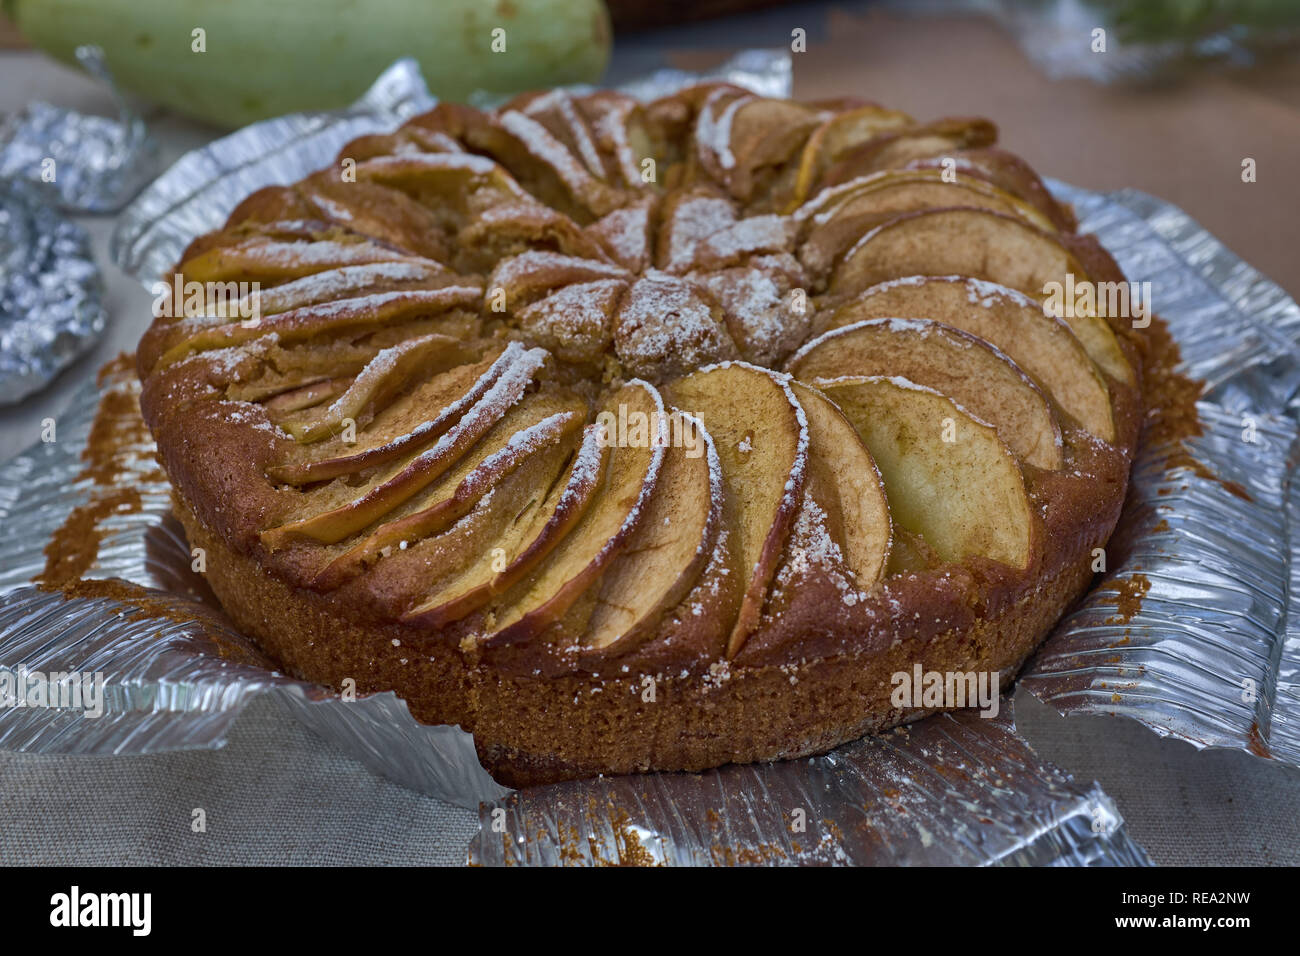 fresh hot homemade baked Apple Pie on a table. Macro - Stock Image